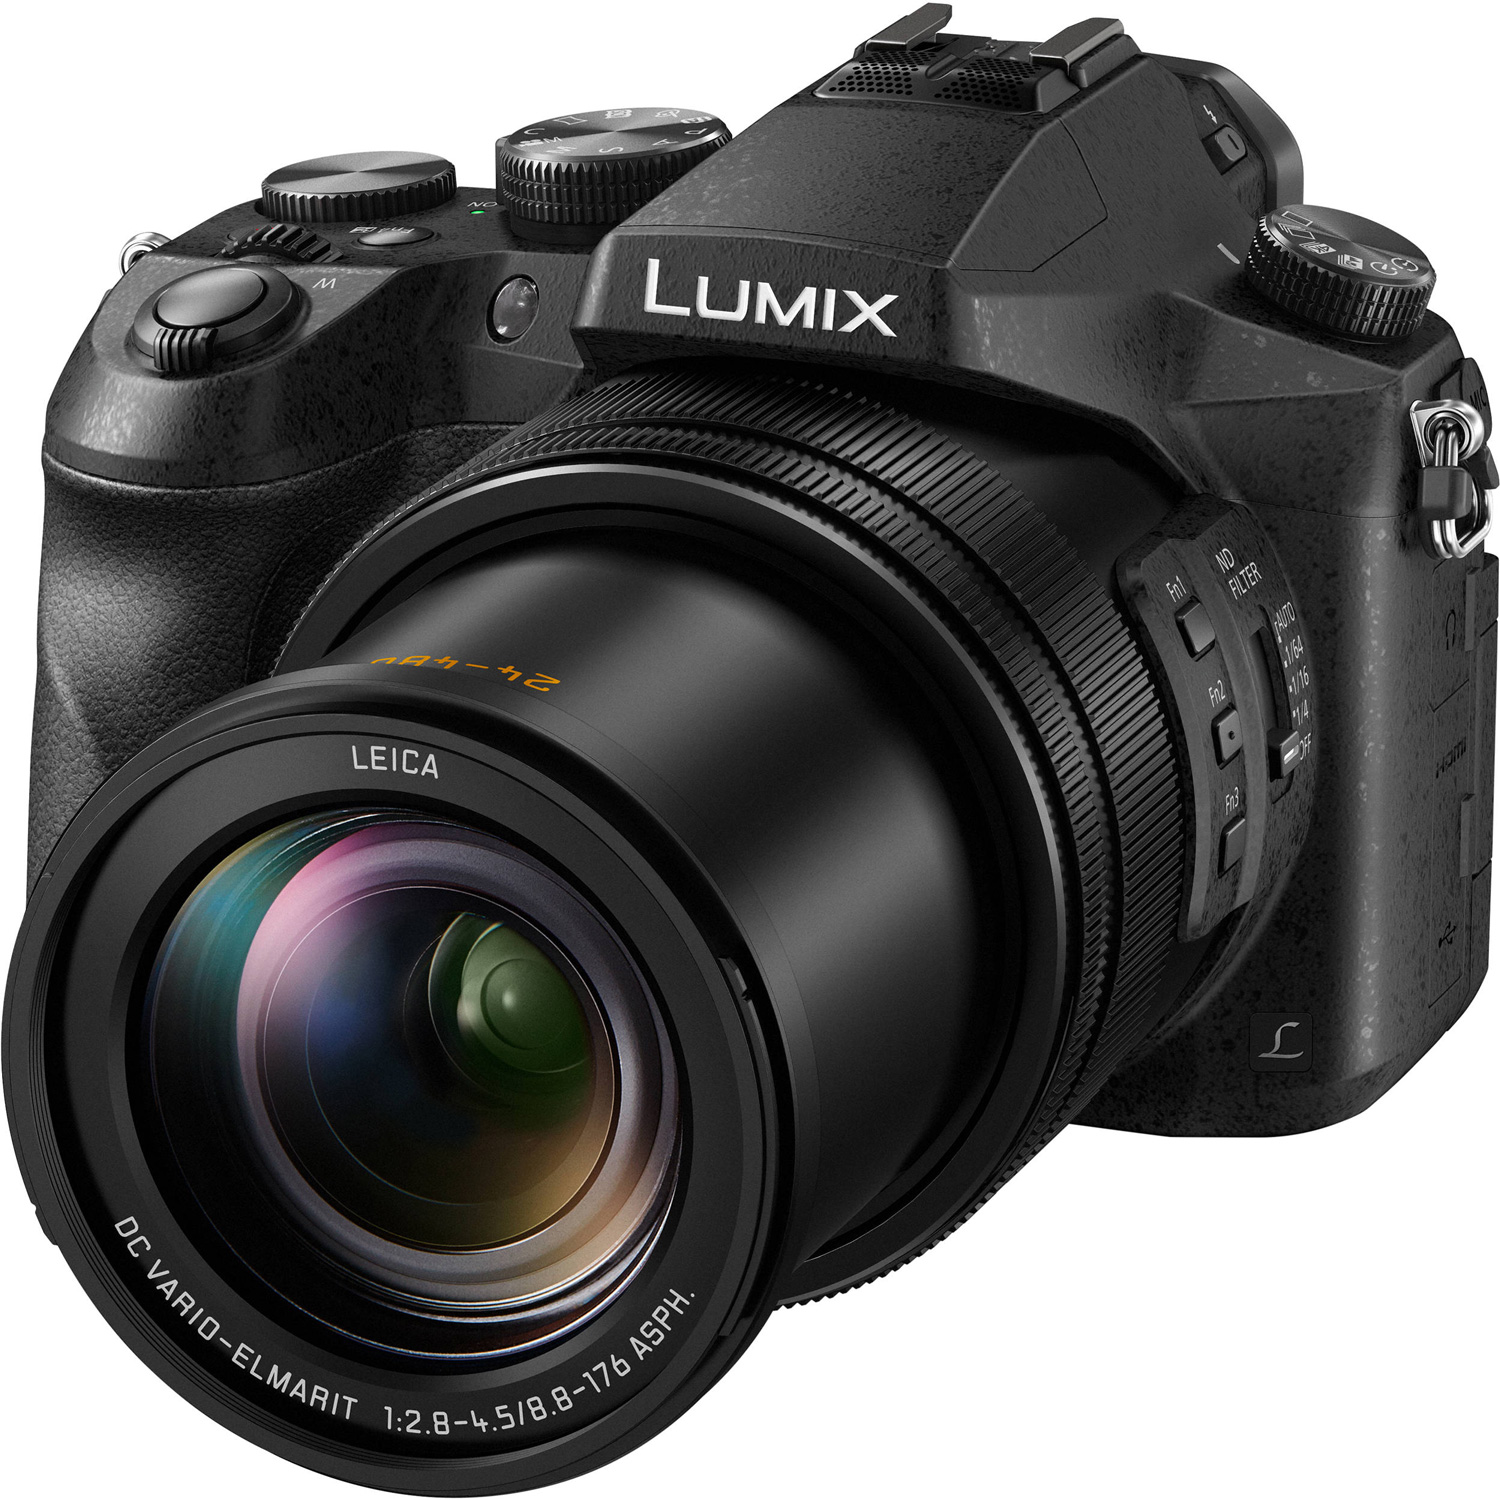 Click here for Lumix DMC-FZ2500 Digital Camera prices